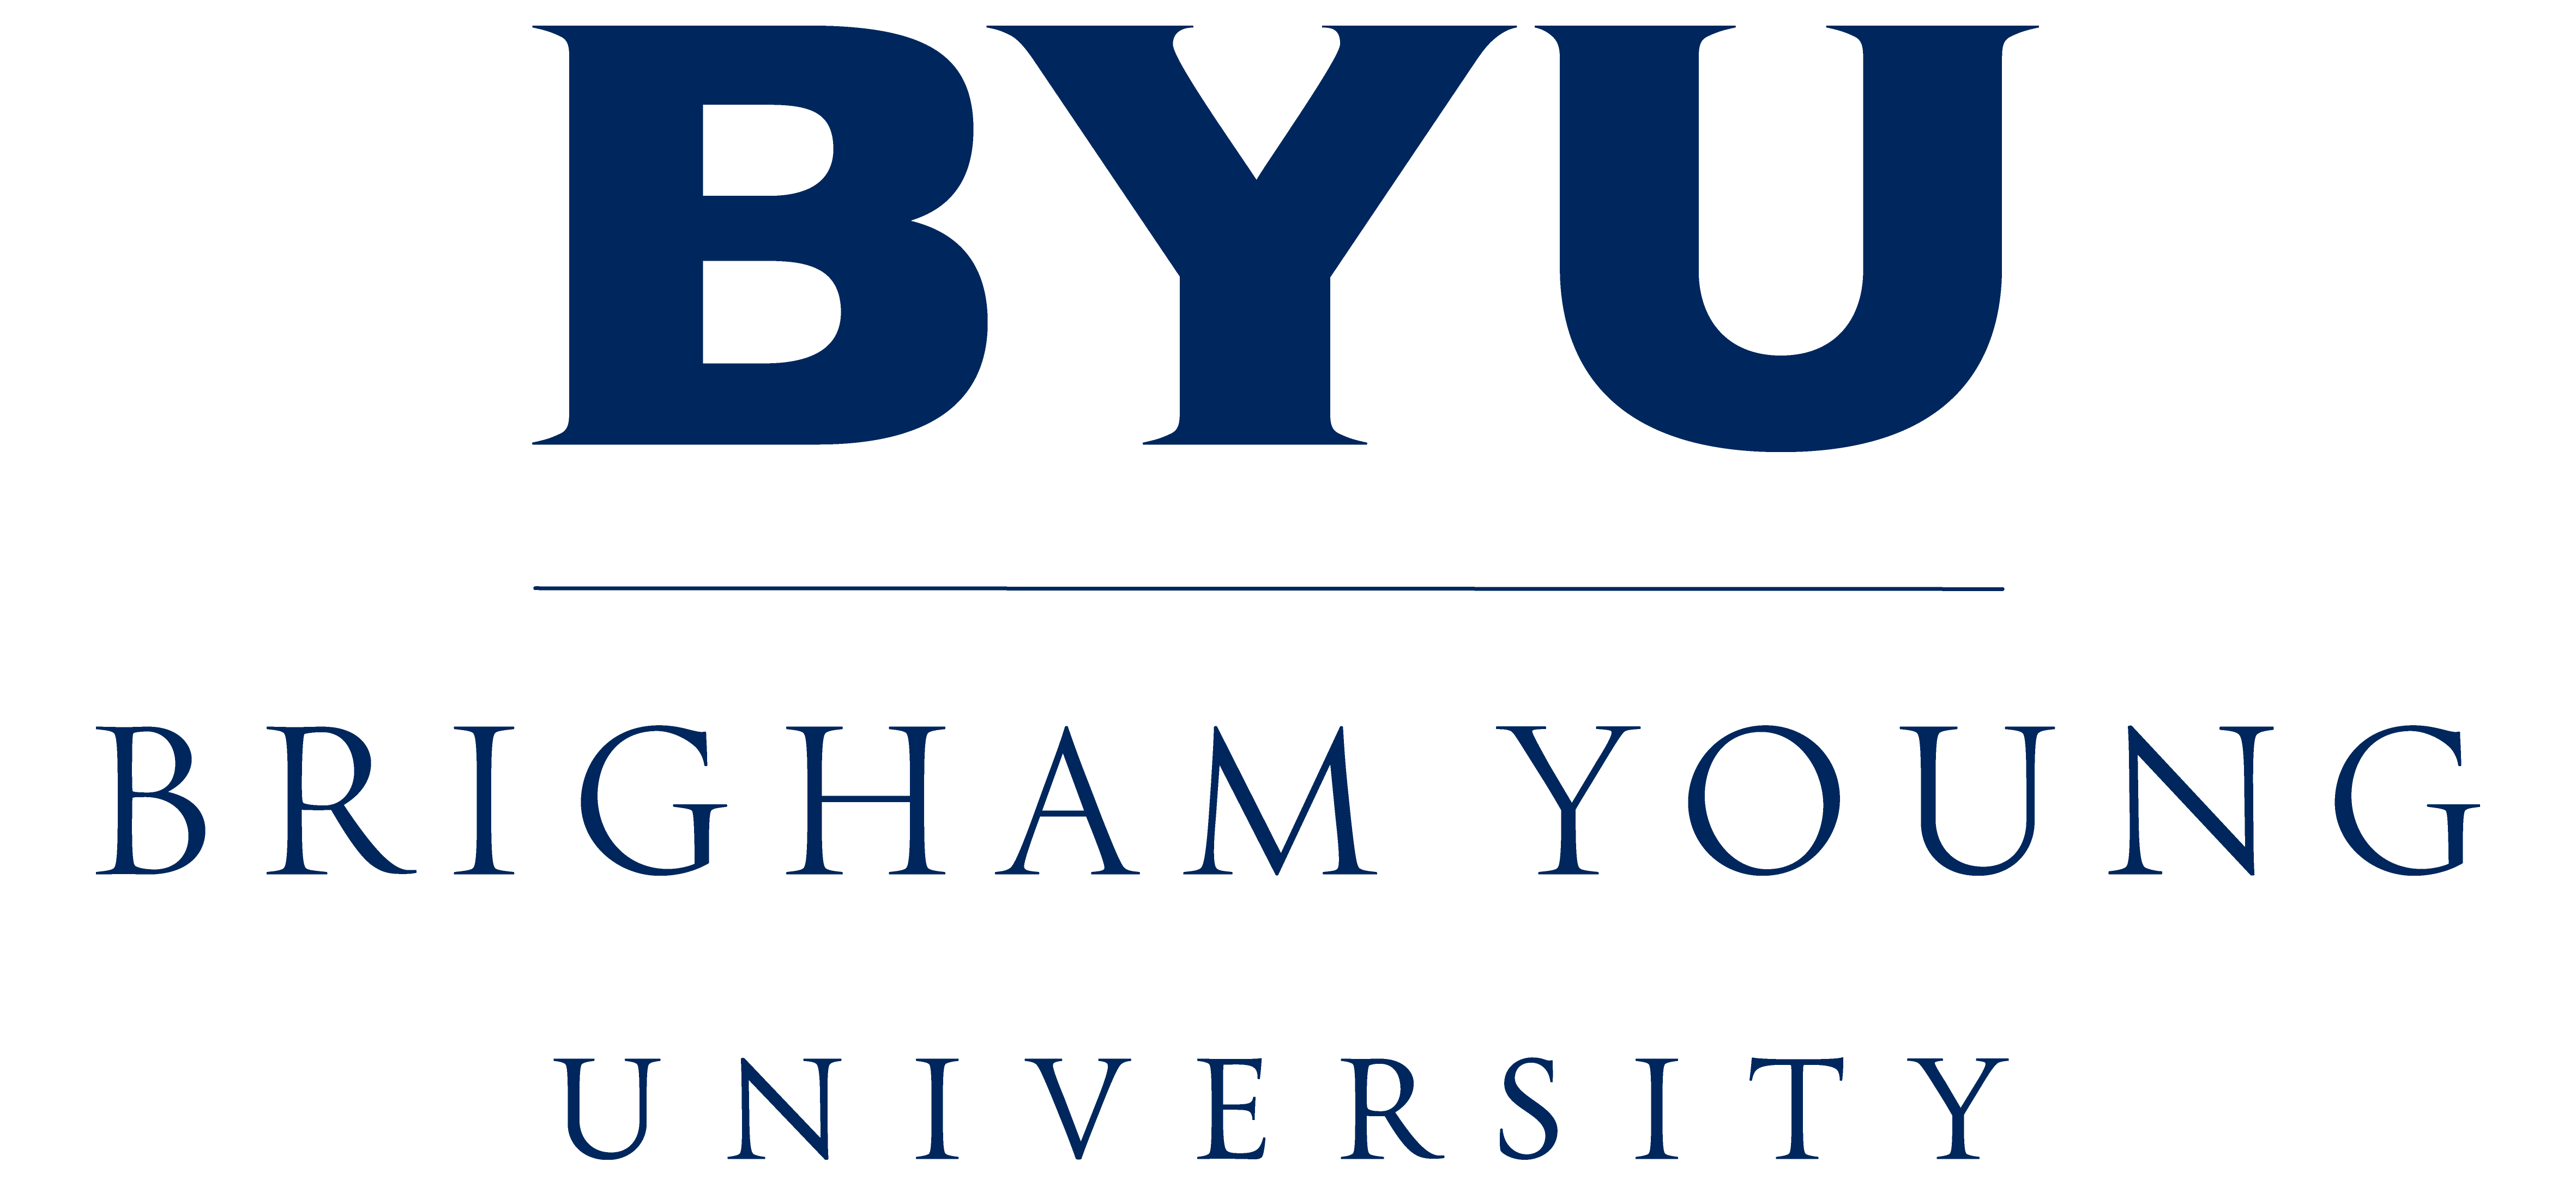 Brigham Young University  Logopedia, The Logo And. Job Leads For Contractors Oval White Pill 4h2. Nutrition School Online Serta Genius Mattress. Restaurant Management Certificate. University Of Michigan Dearborn Business School. Masters Degree For Nurses North Ranch Storage. Aerospace Technology Degree Ft Worth Housing. Email Marketing Campaign Examples. Knoxville Divorce Lawyers Lose Weight 2 Weeks